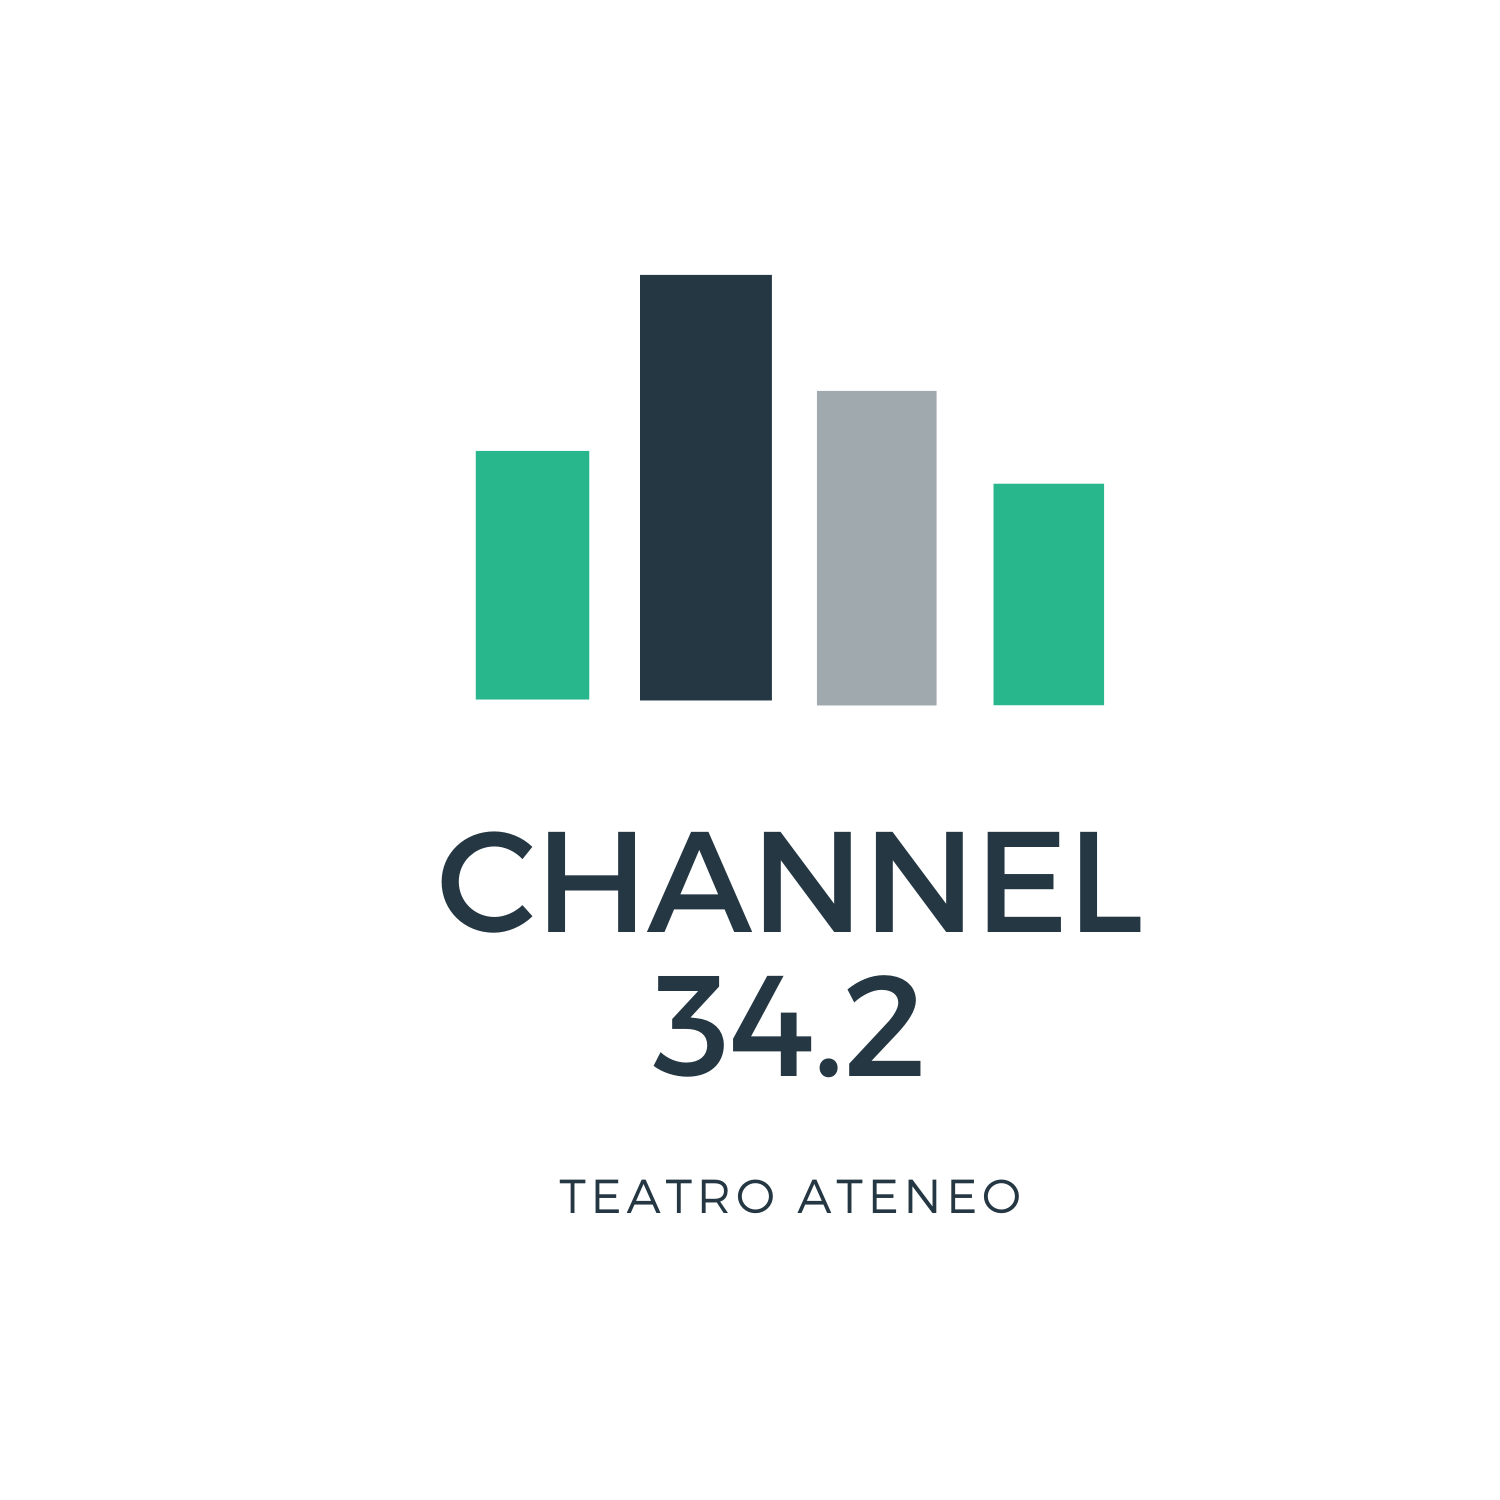 Channel 34.2